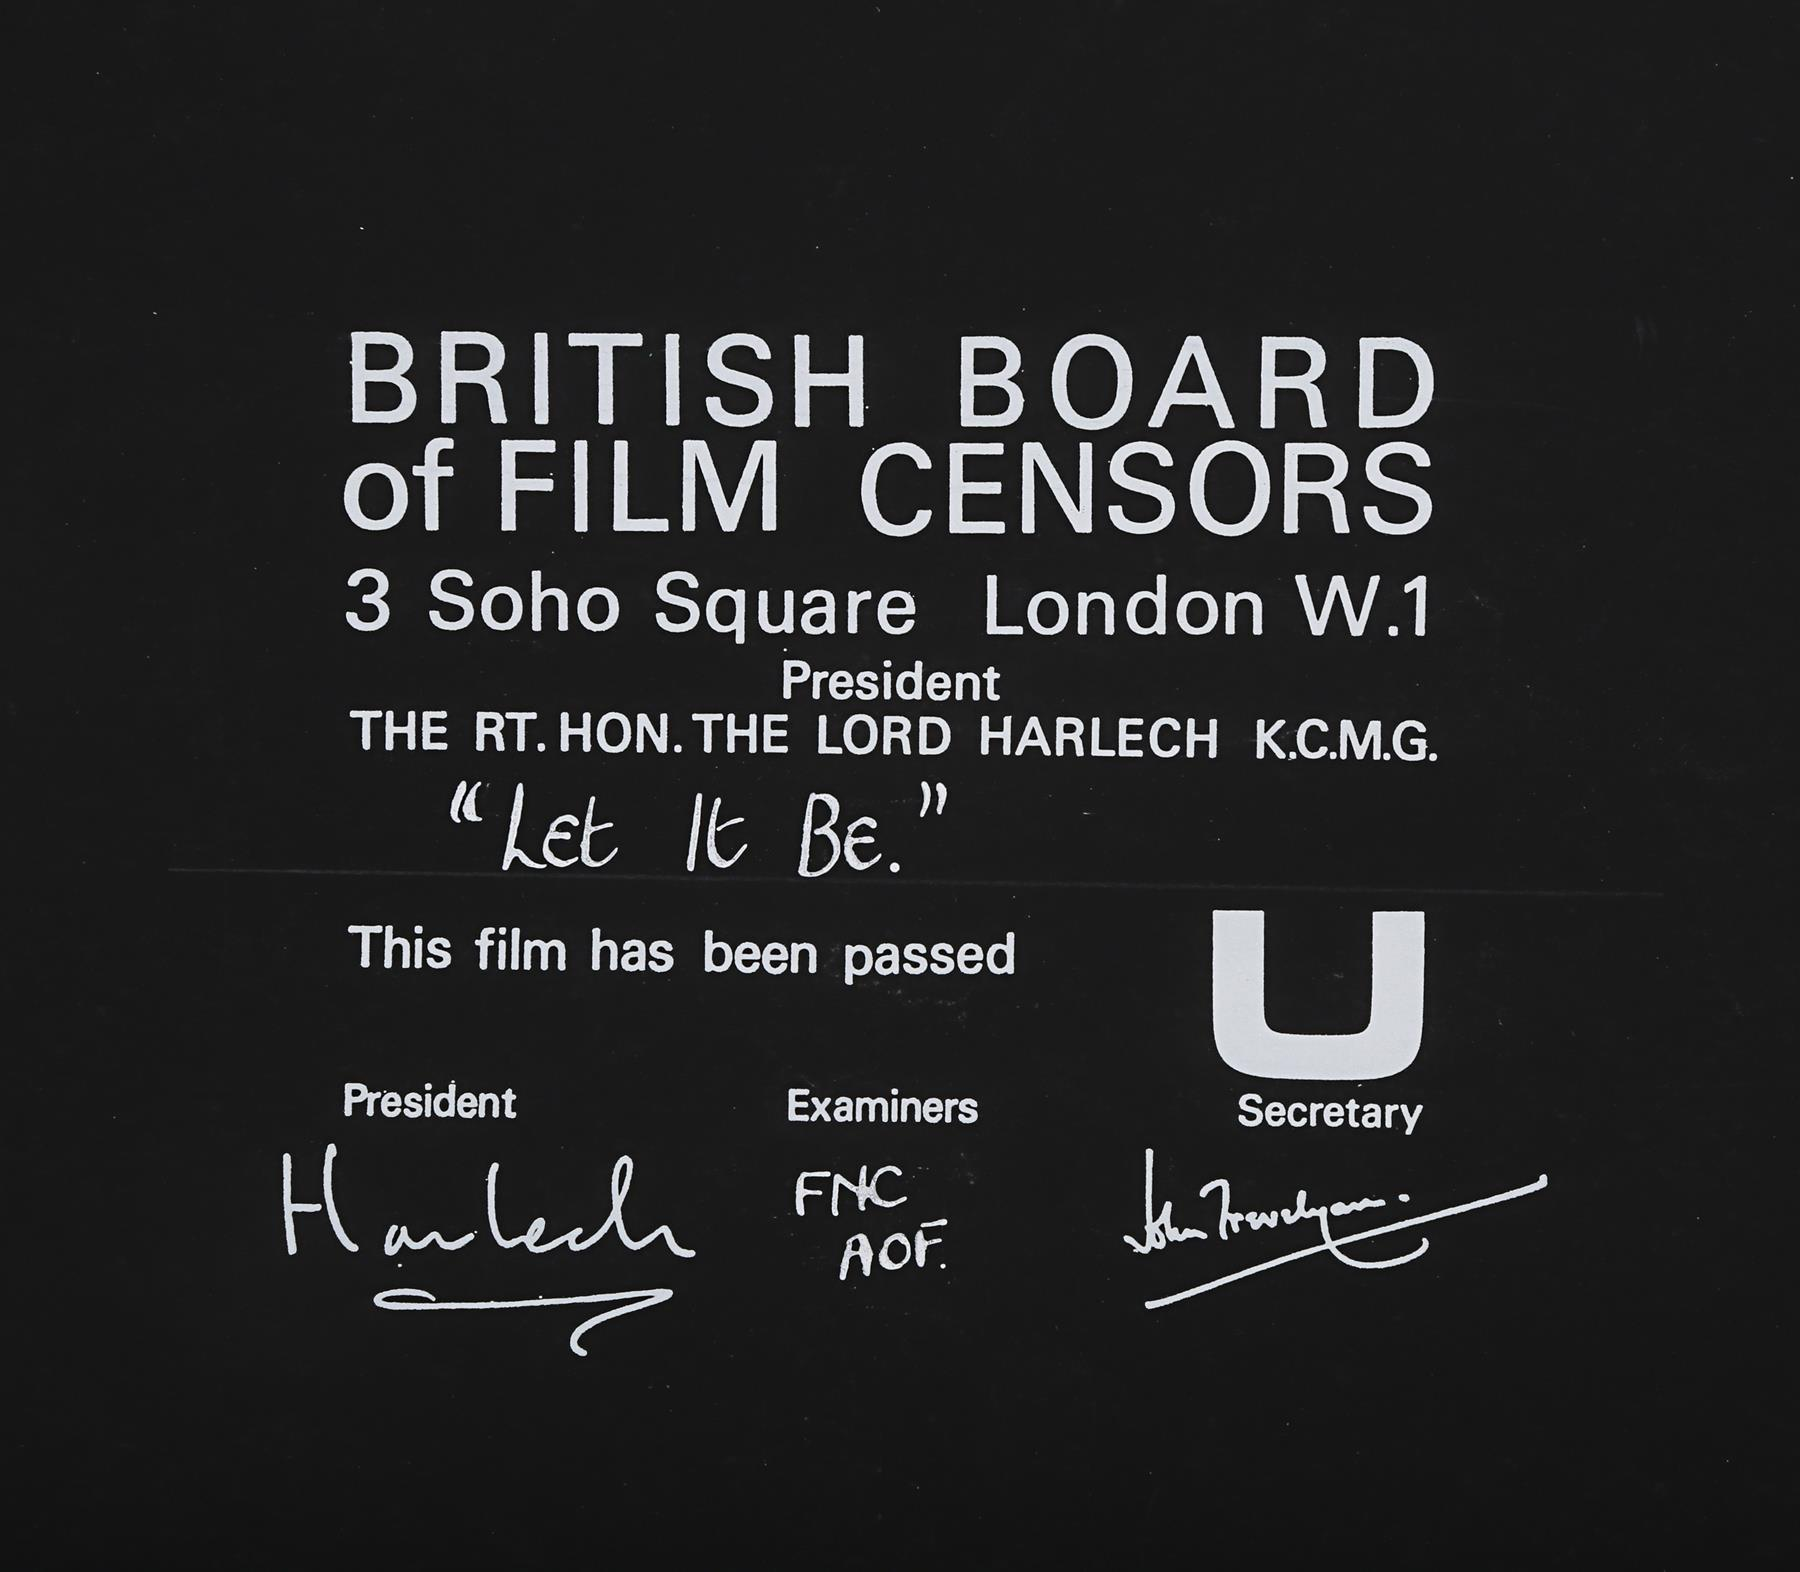 LET IT BE (1969) - BBFC Certificate, 1969 - Image 2 of 2